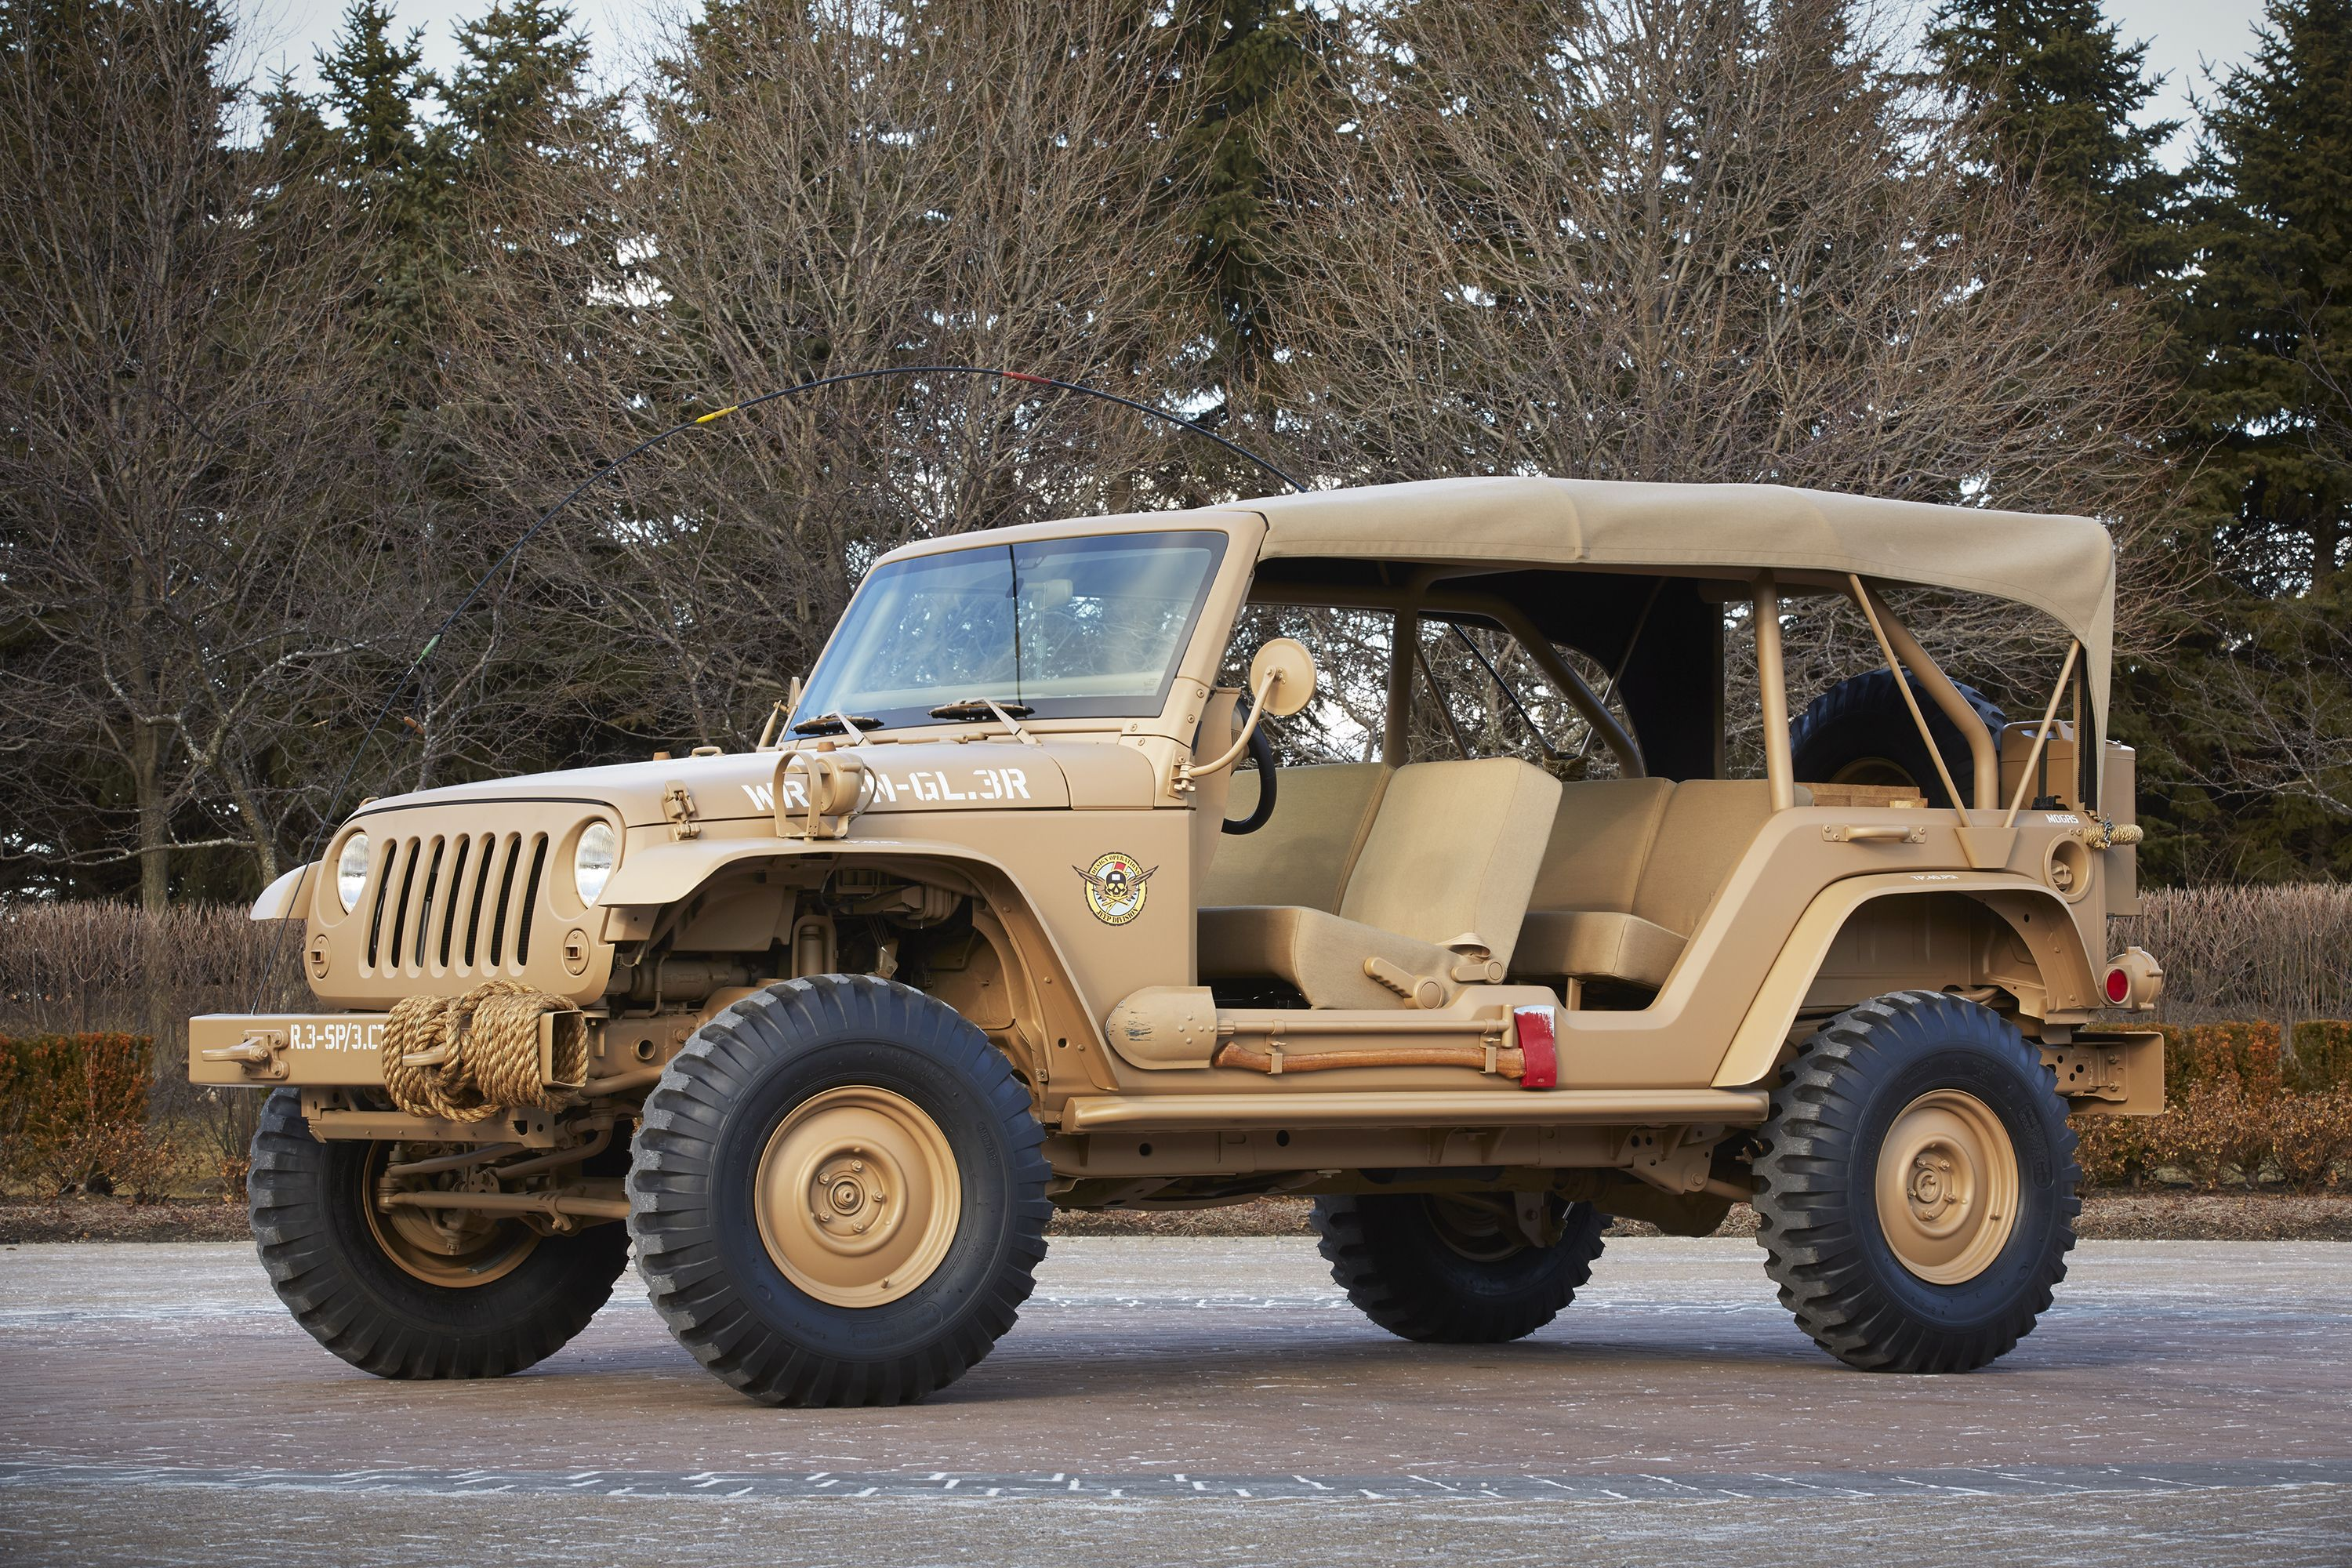 Jeep s staff car concept carries the 2015 easter jeep safari theme of open air